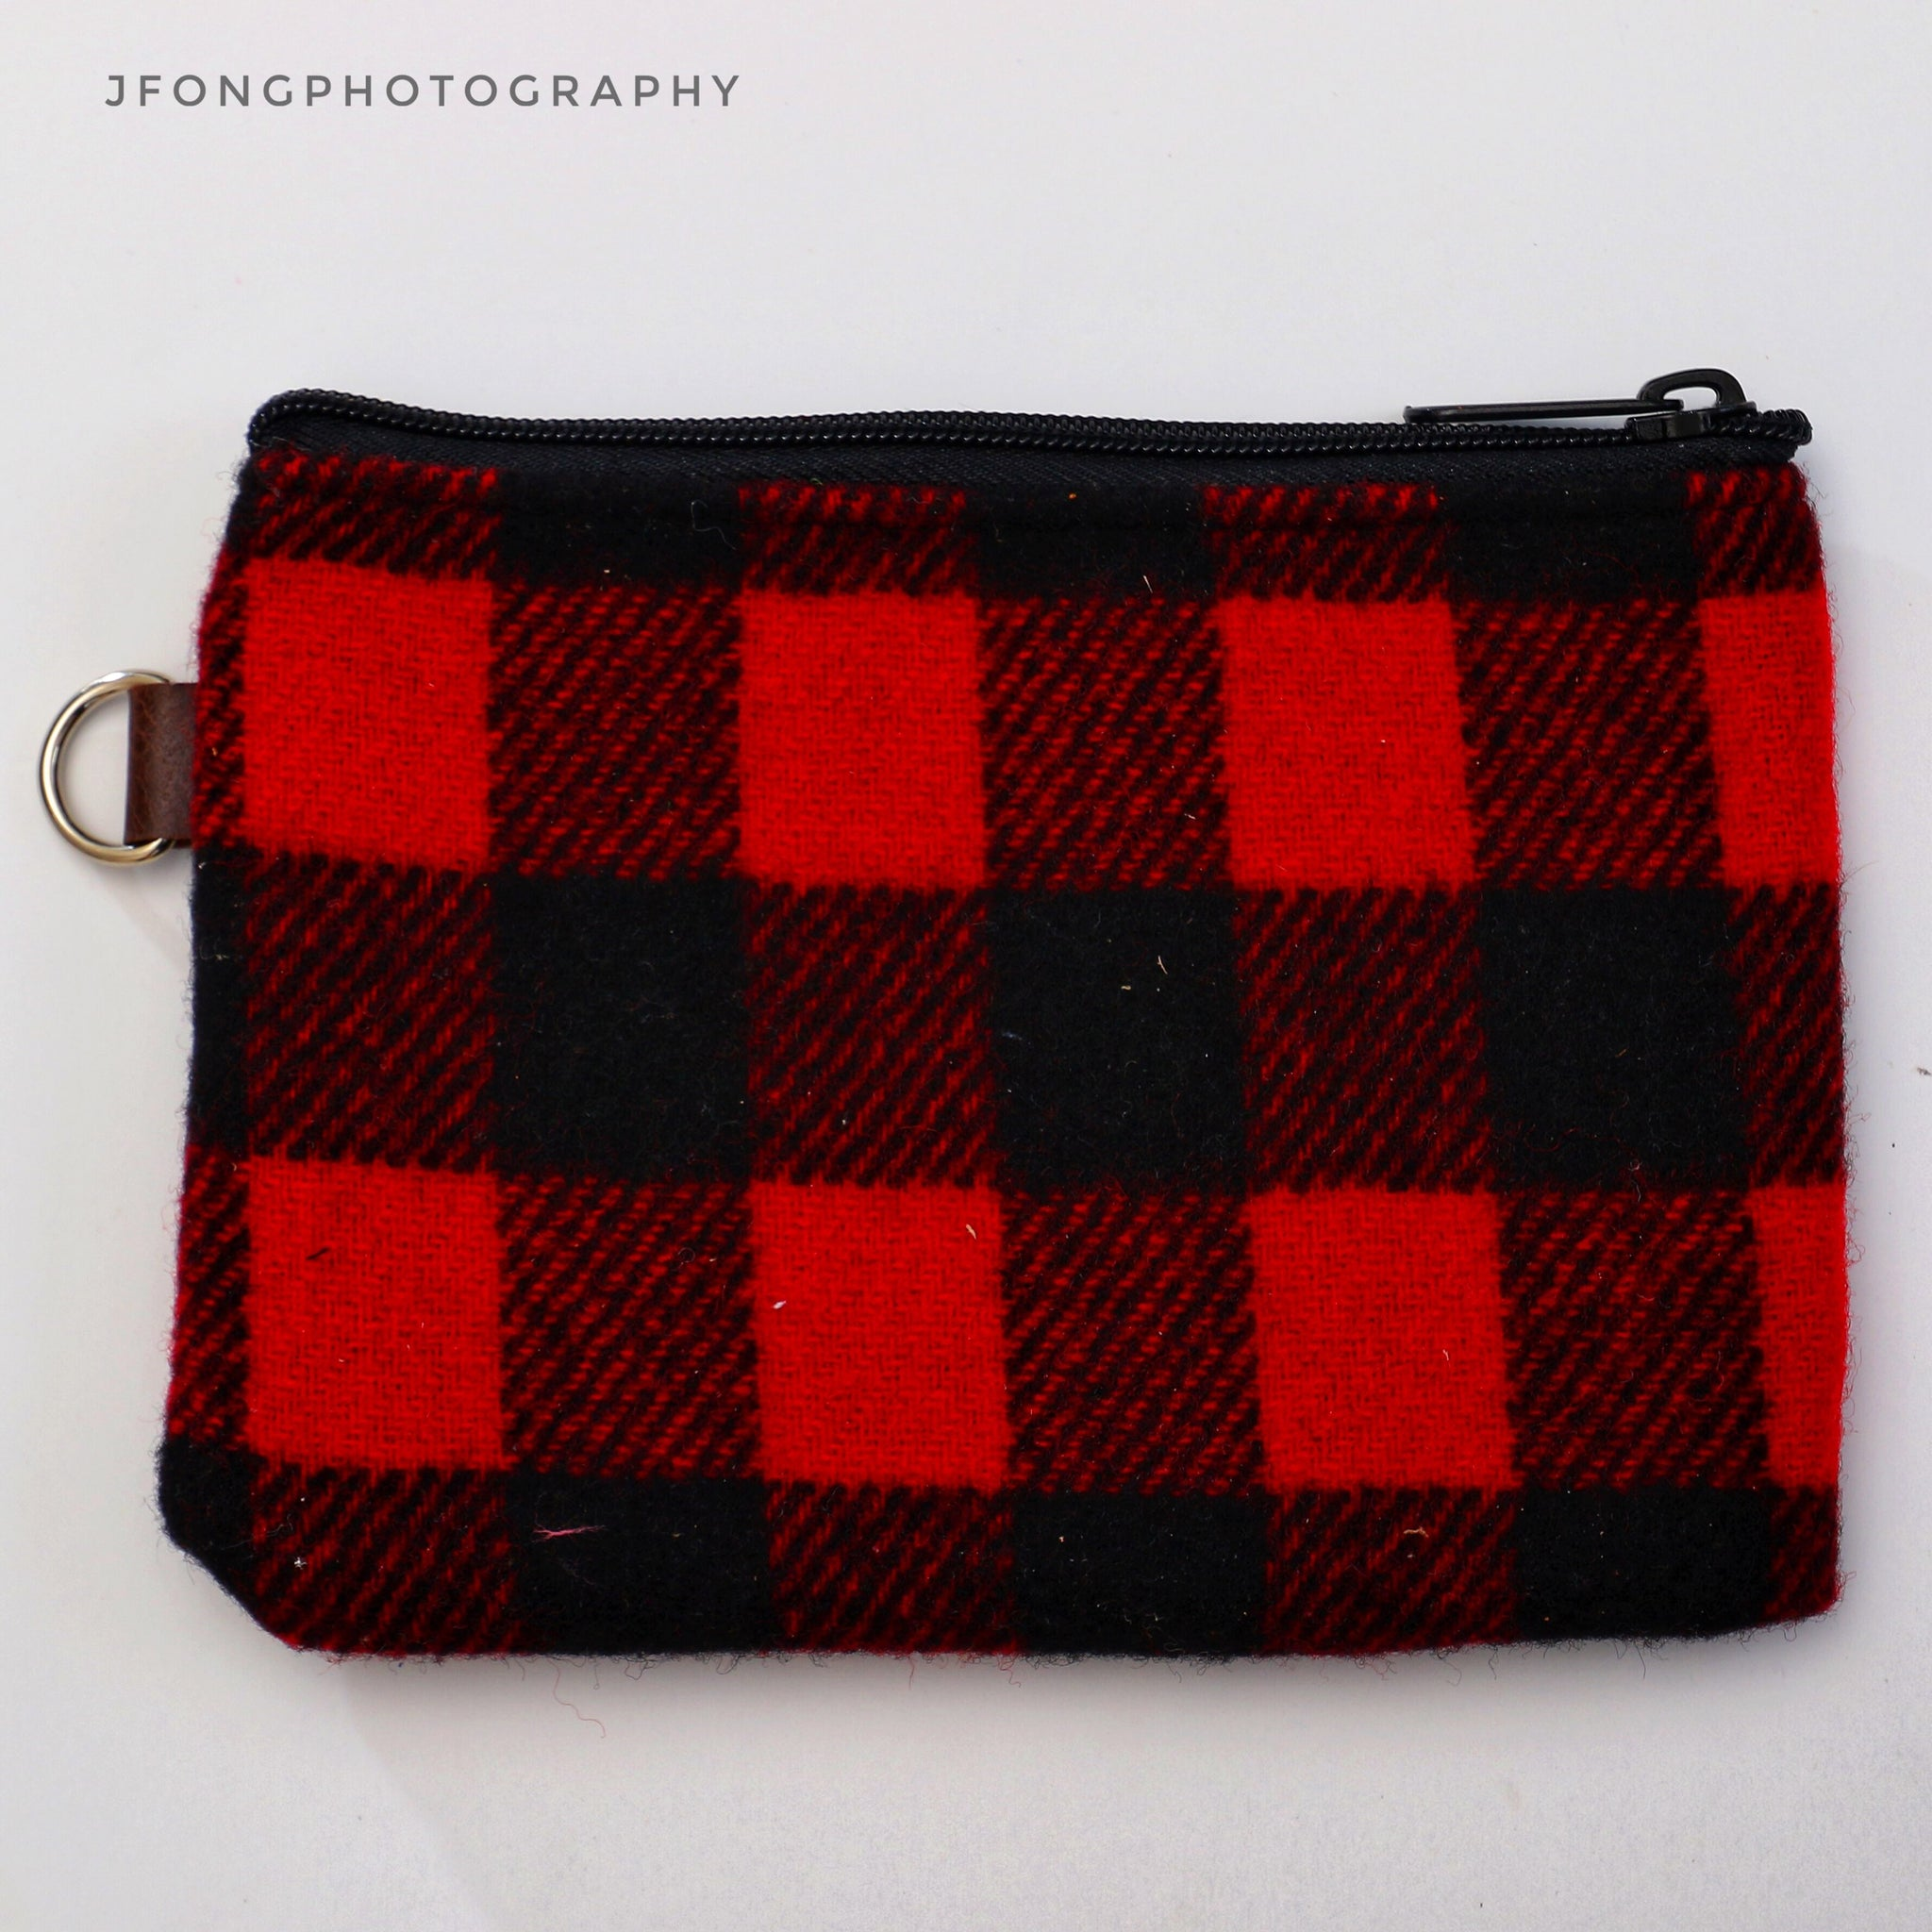 BLACK AND RED SEAMUS/OGA ZIP POUCH